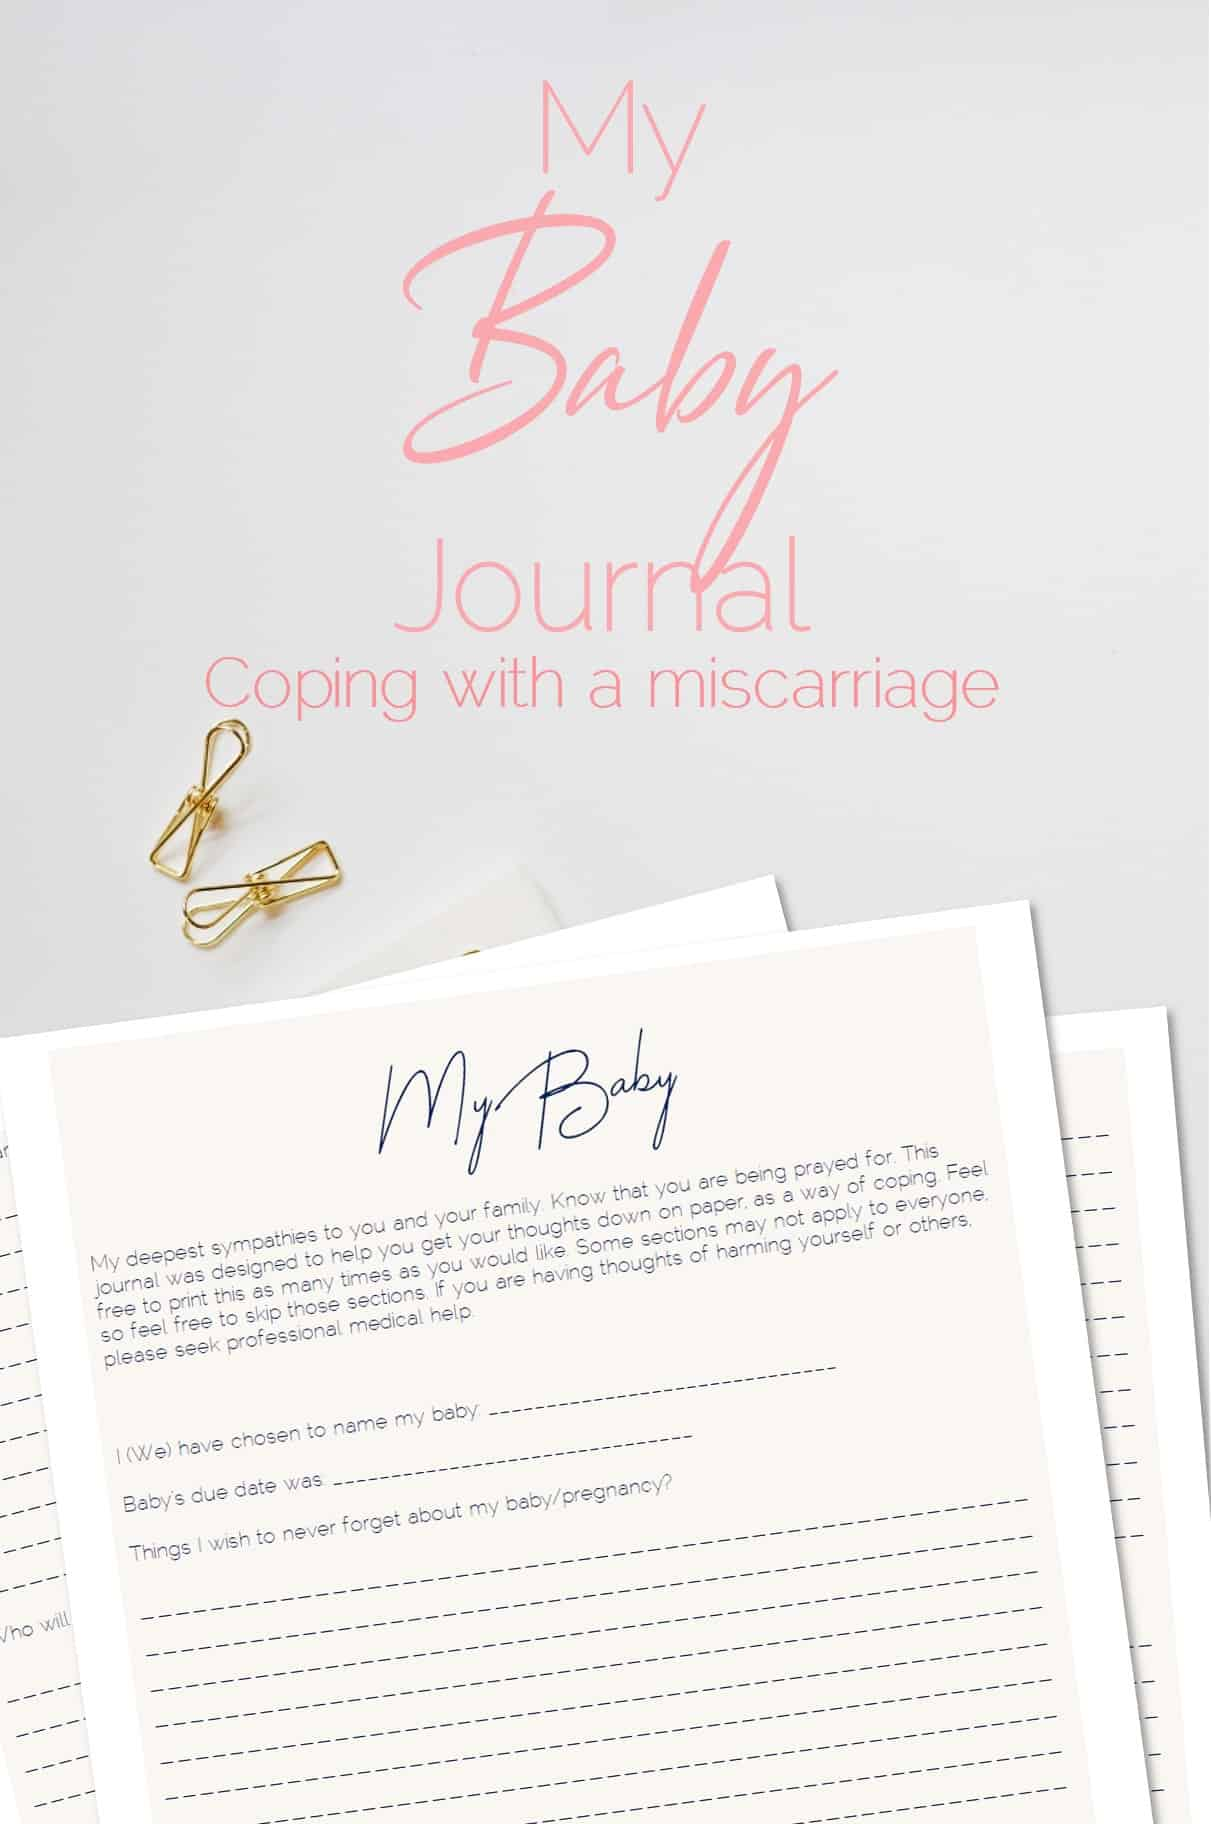 Coping with a miscarriage grief journal